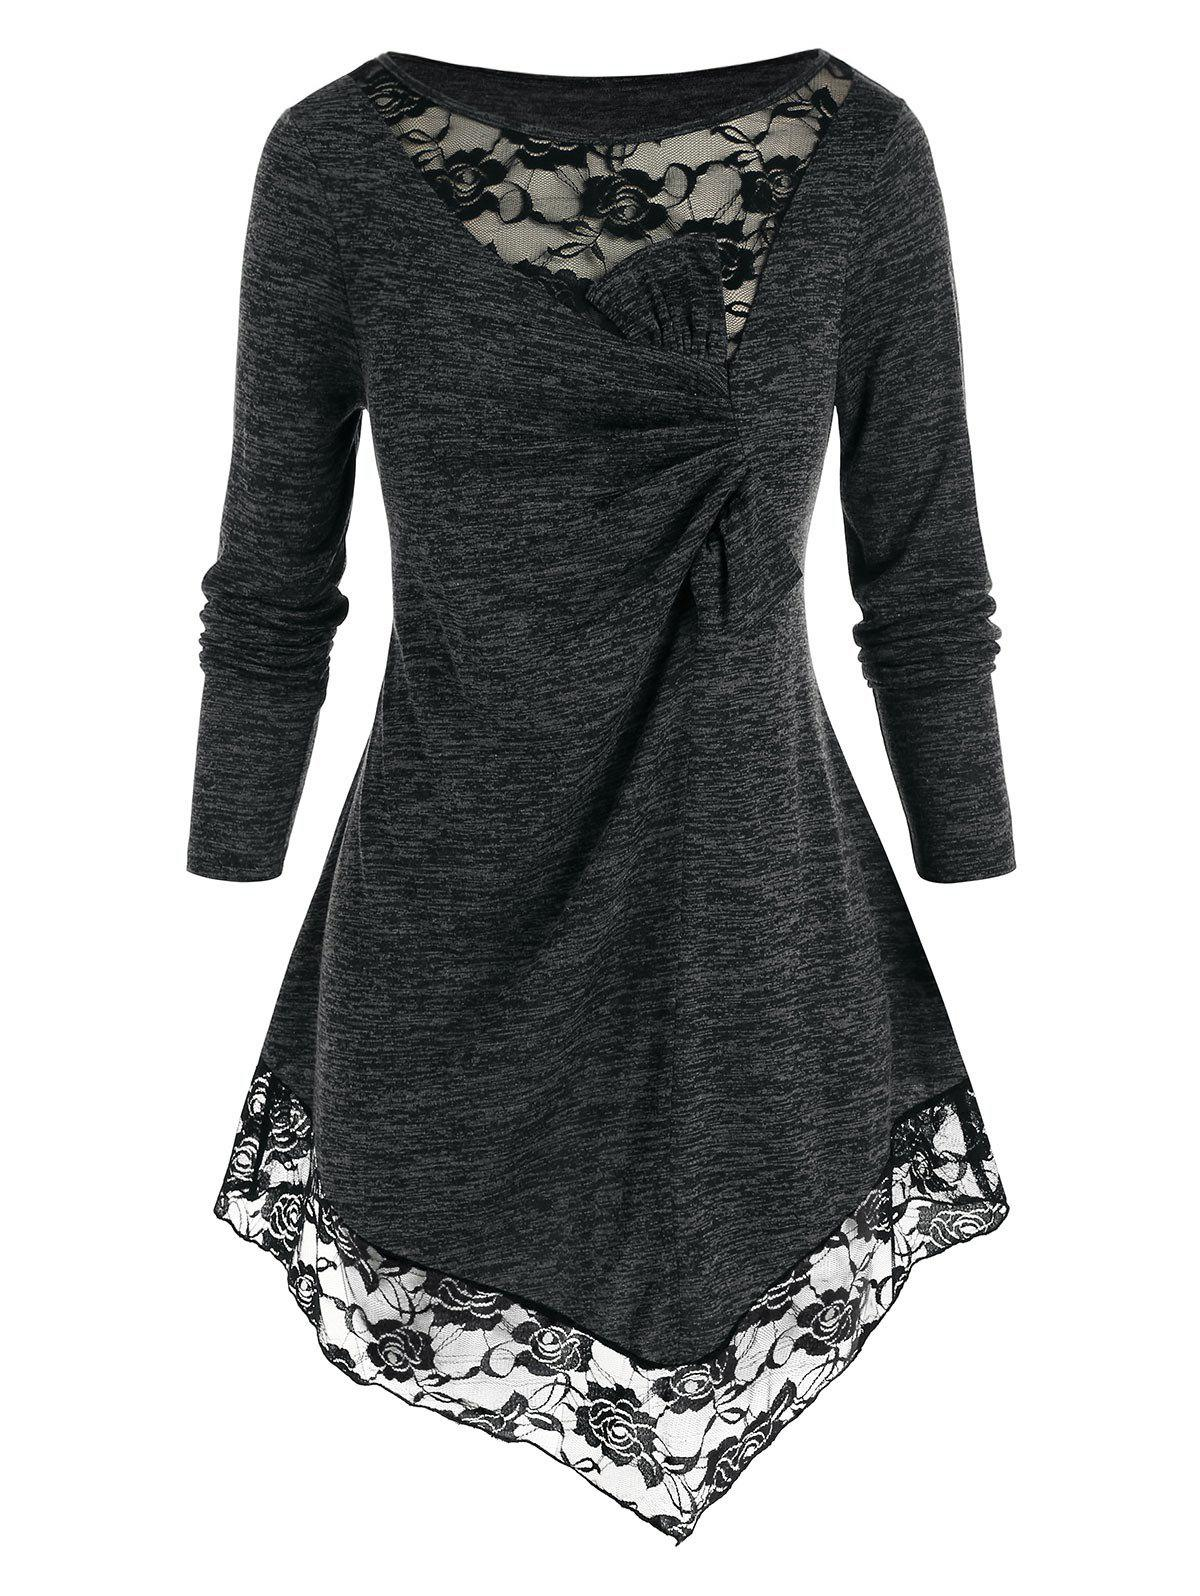 New Plus Size Space Dye Lace Panel Long Sleeve Knot T-shirt